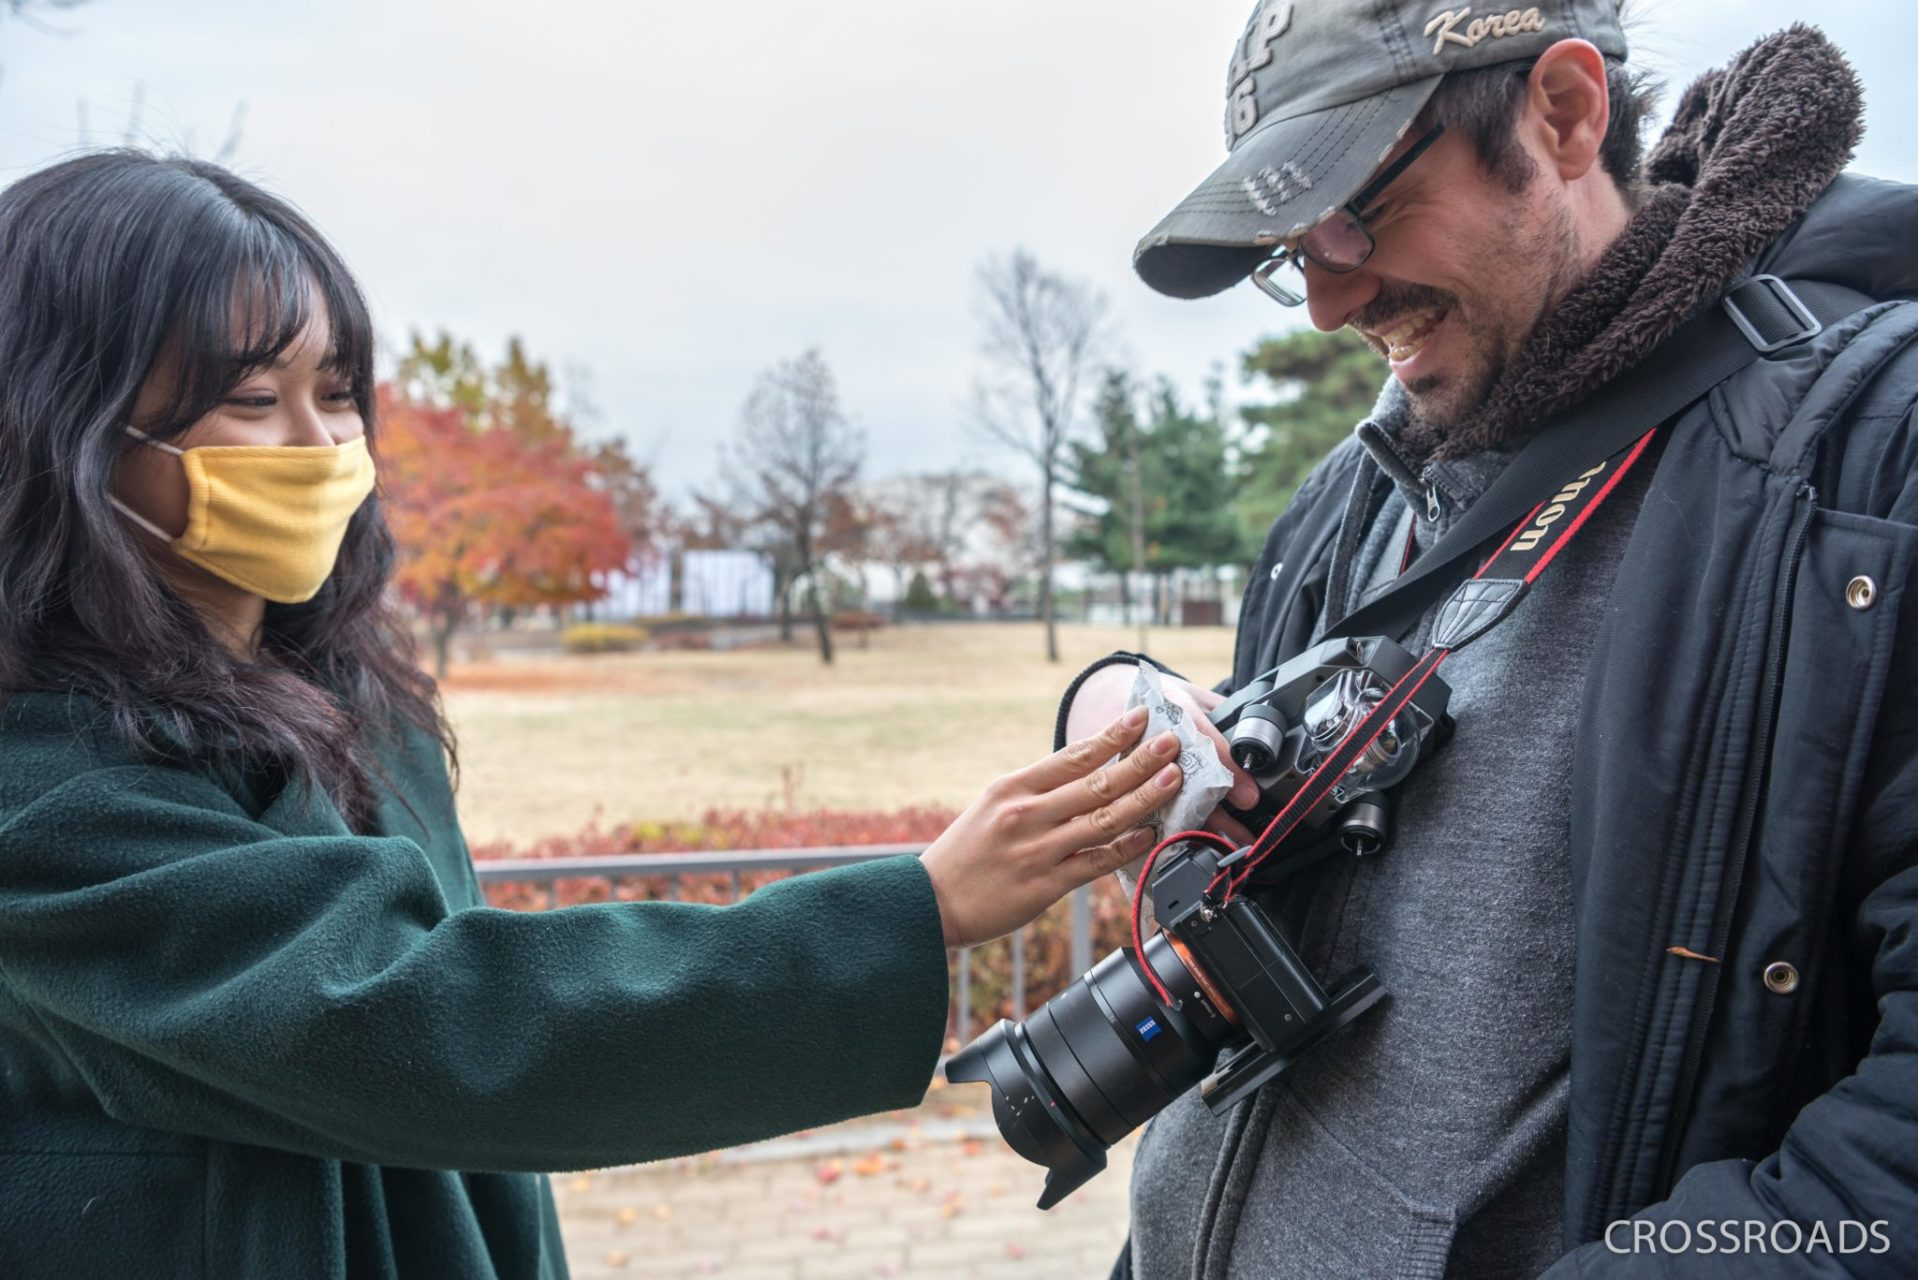 It's a cold, cold day and YuJin, one of the actors, puts a heat patch on the director's freezing hands.